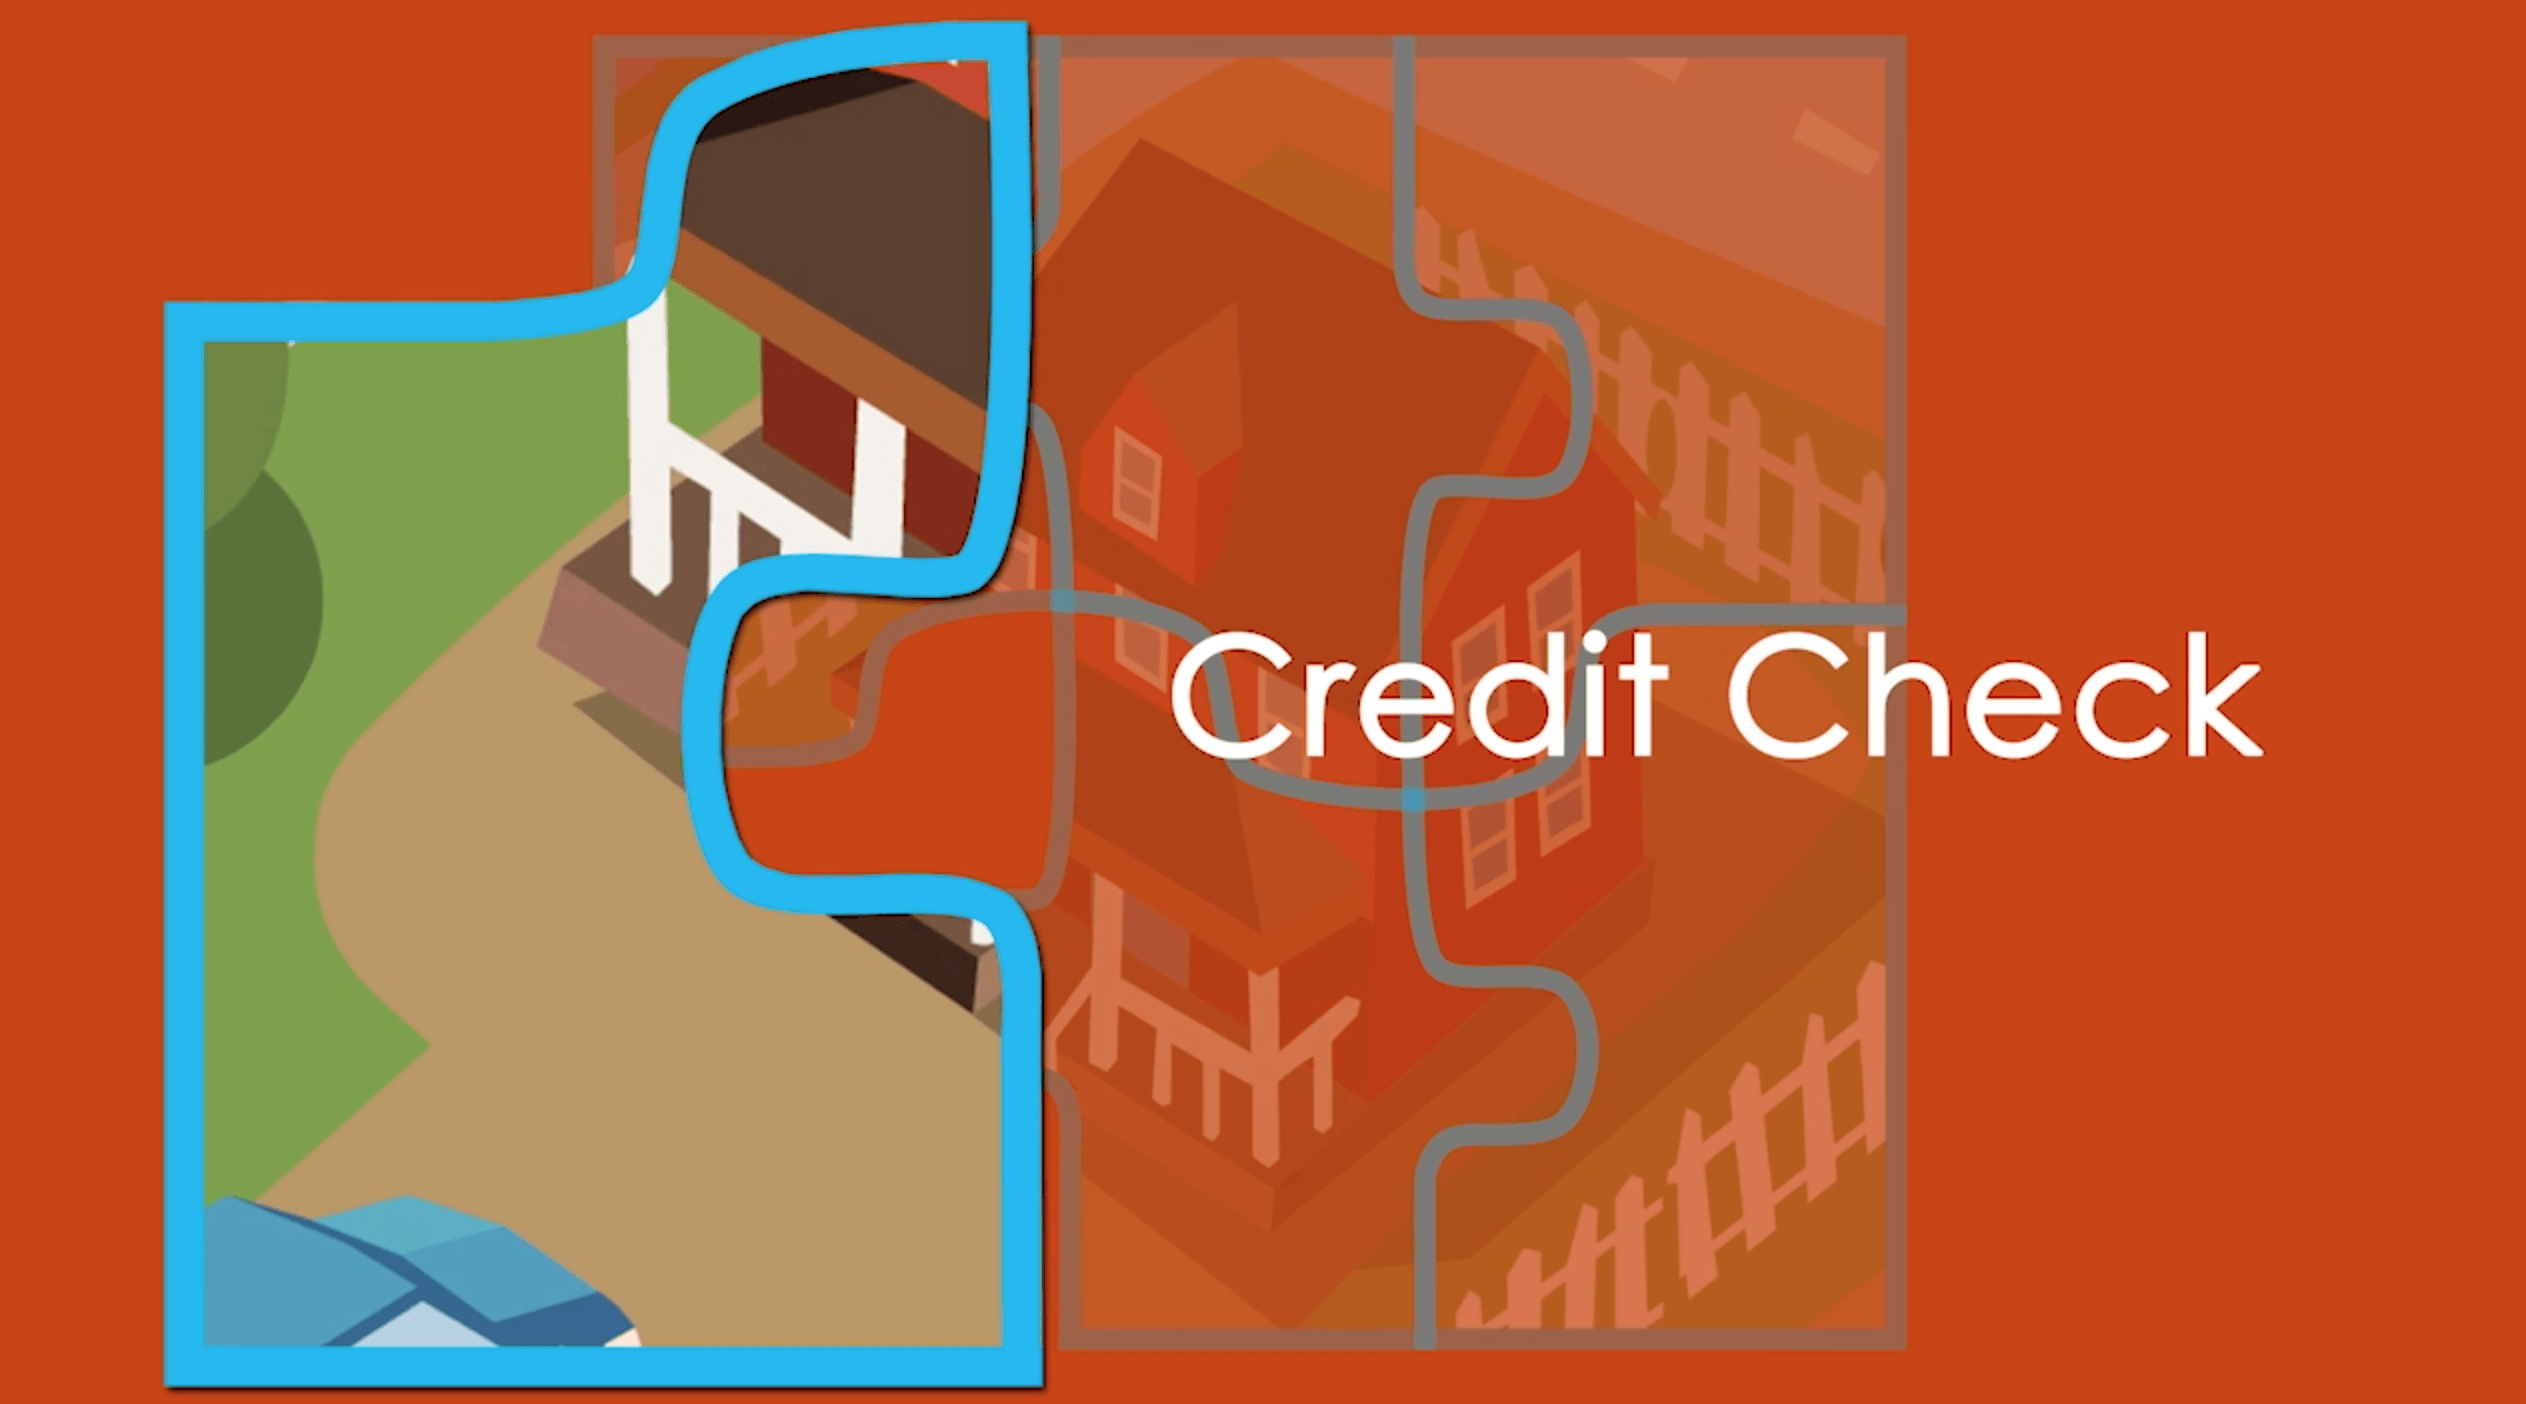 Home Mortgage Credit Check Info